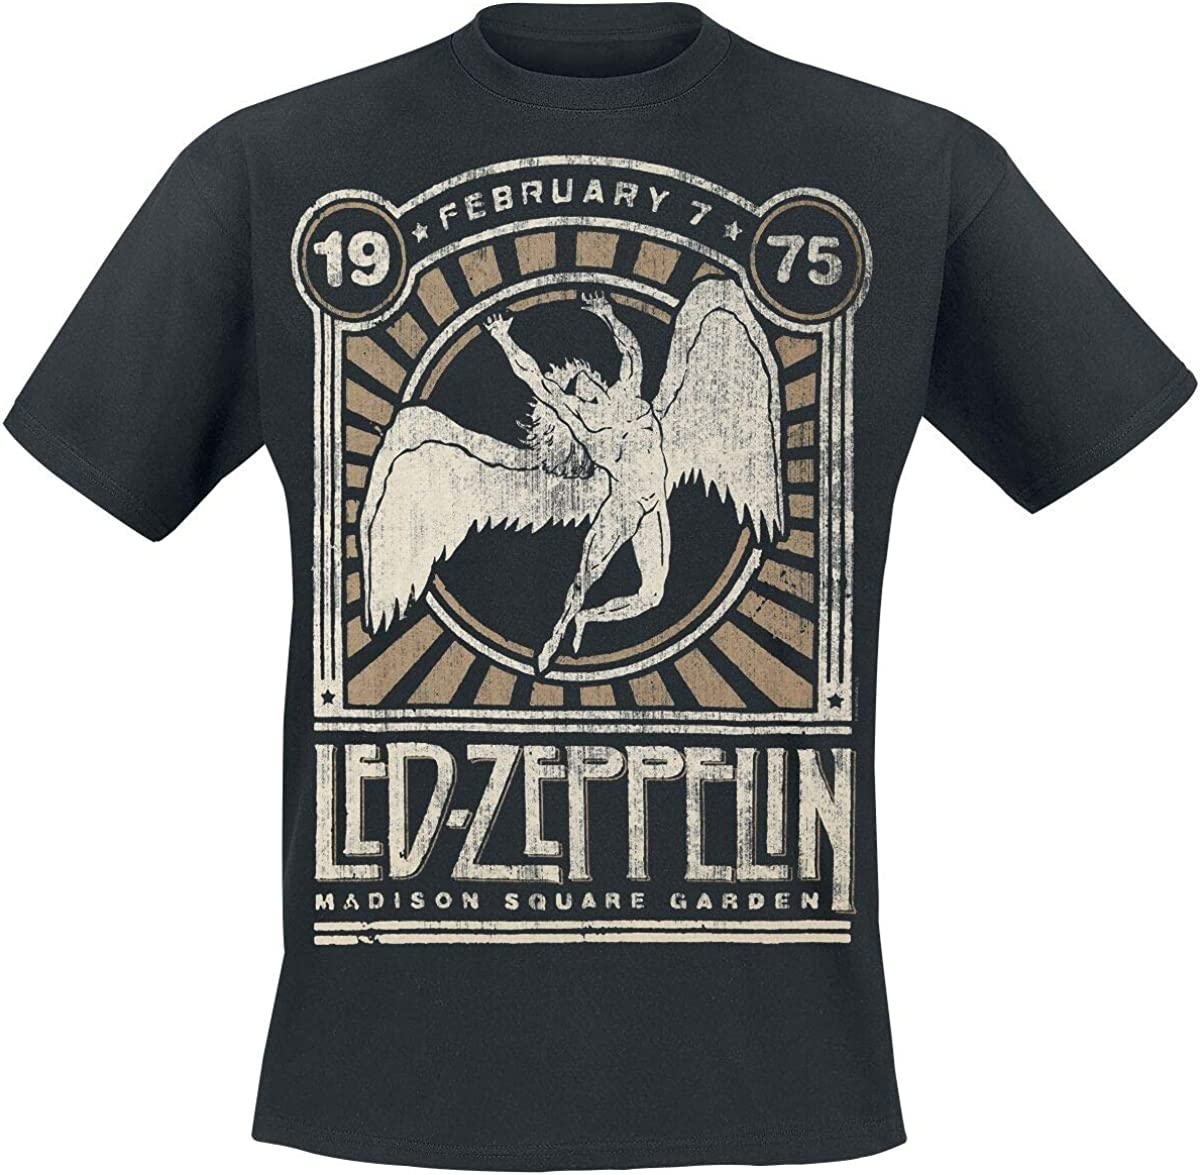 Led Zeppelin Madison Square Garden 1975 Hombre Camiseta Negro 3XL, 100% algodón, Regular: Amazon.es: Ropa y accesorios